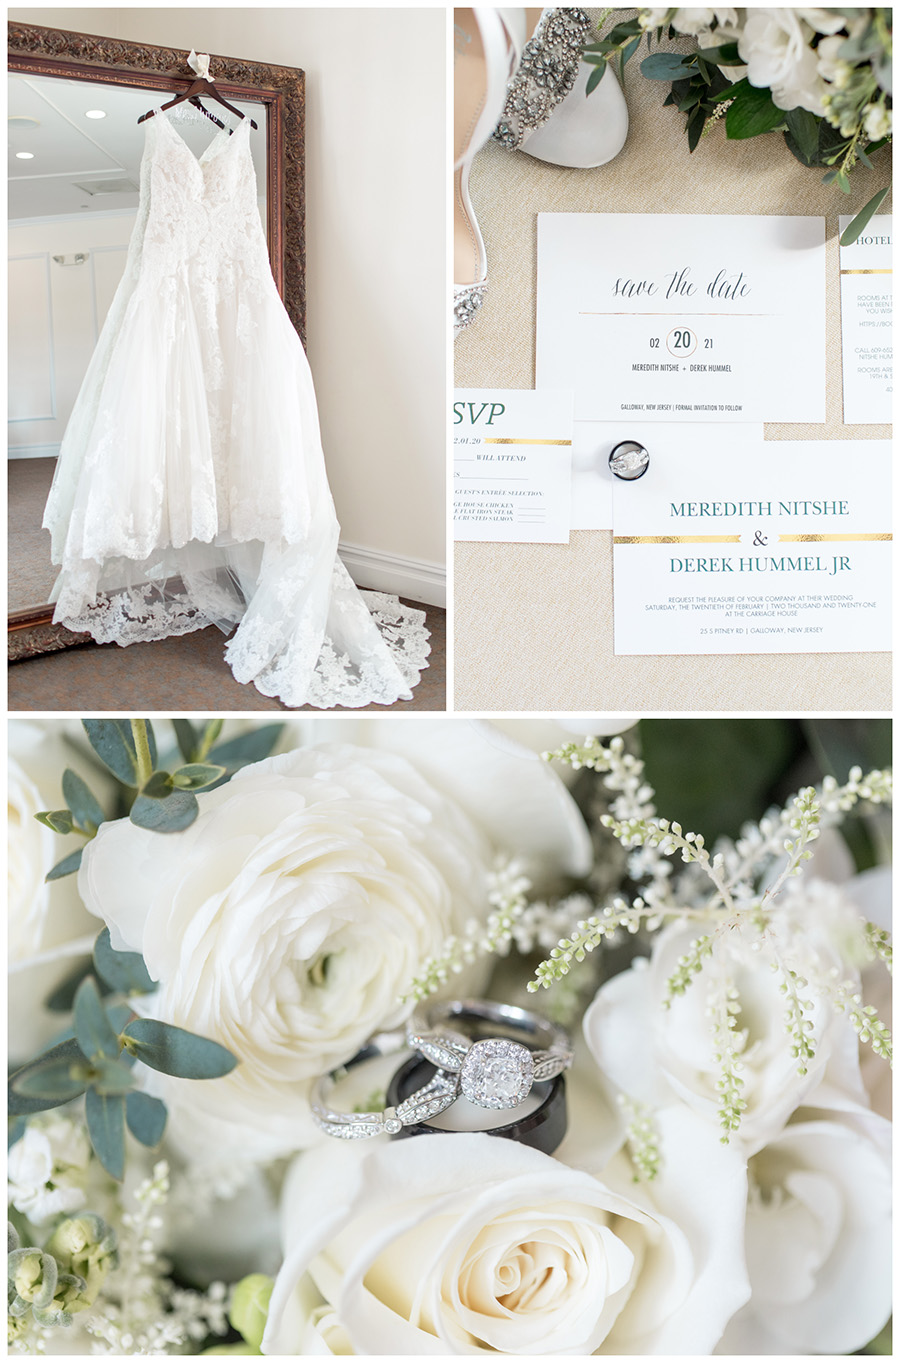 wedding day details in the bridal suite at the Carriage House